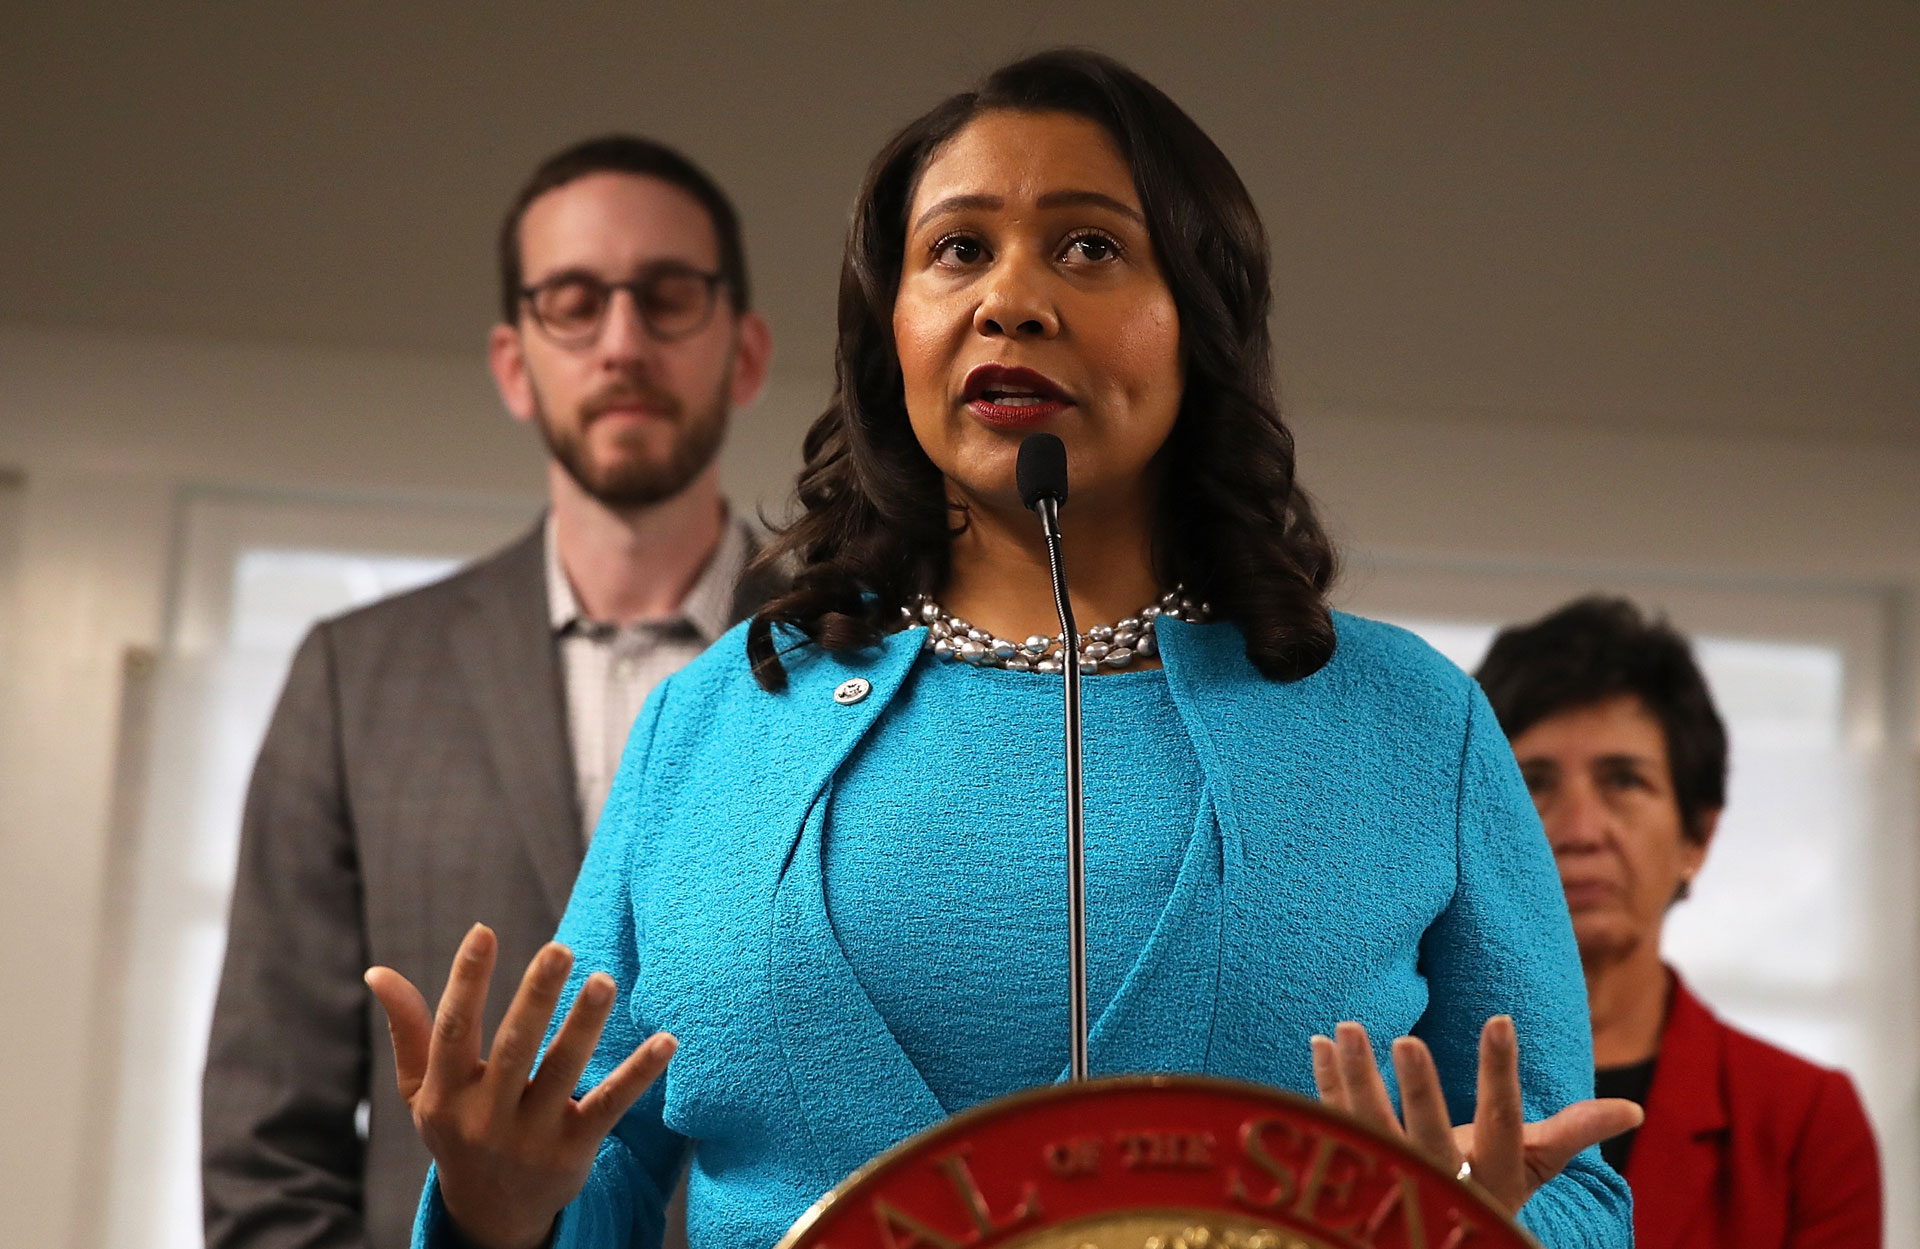 Lawsuit Demands S.F. Mayor and Police Release Public Records Connected to Journalist Raid